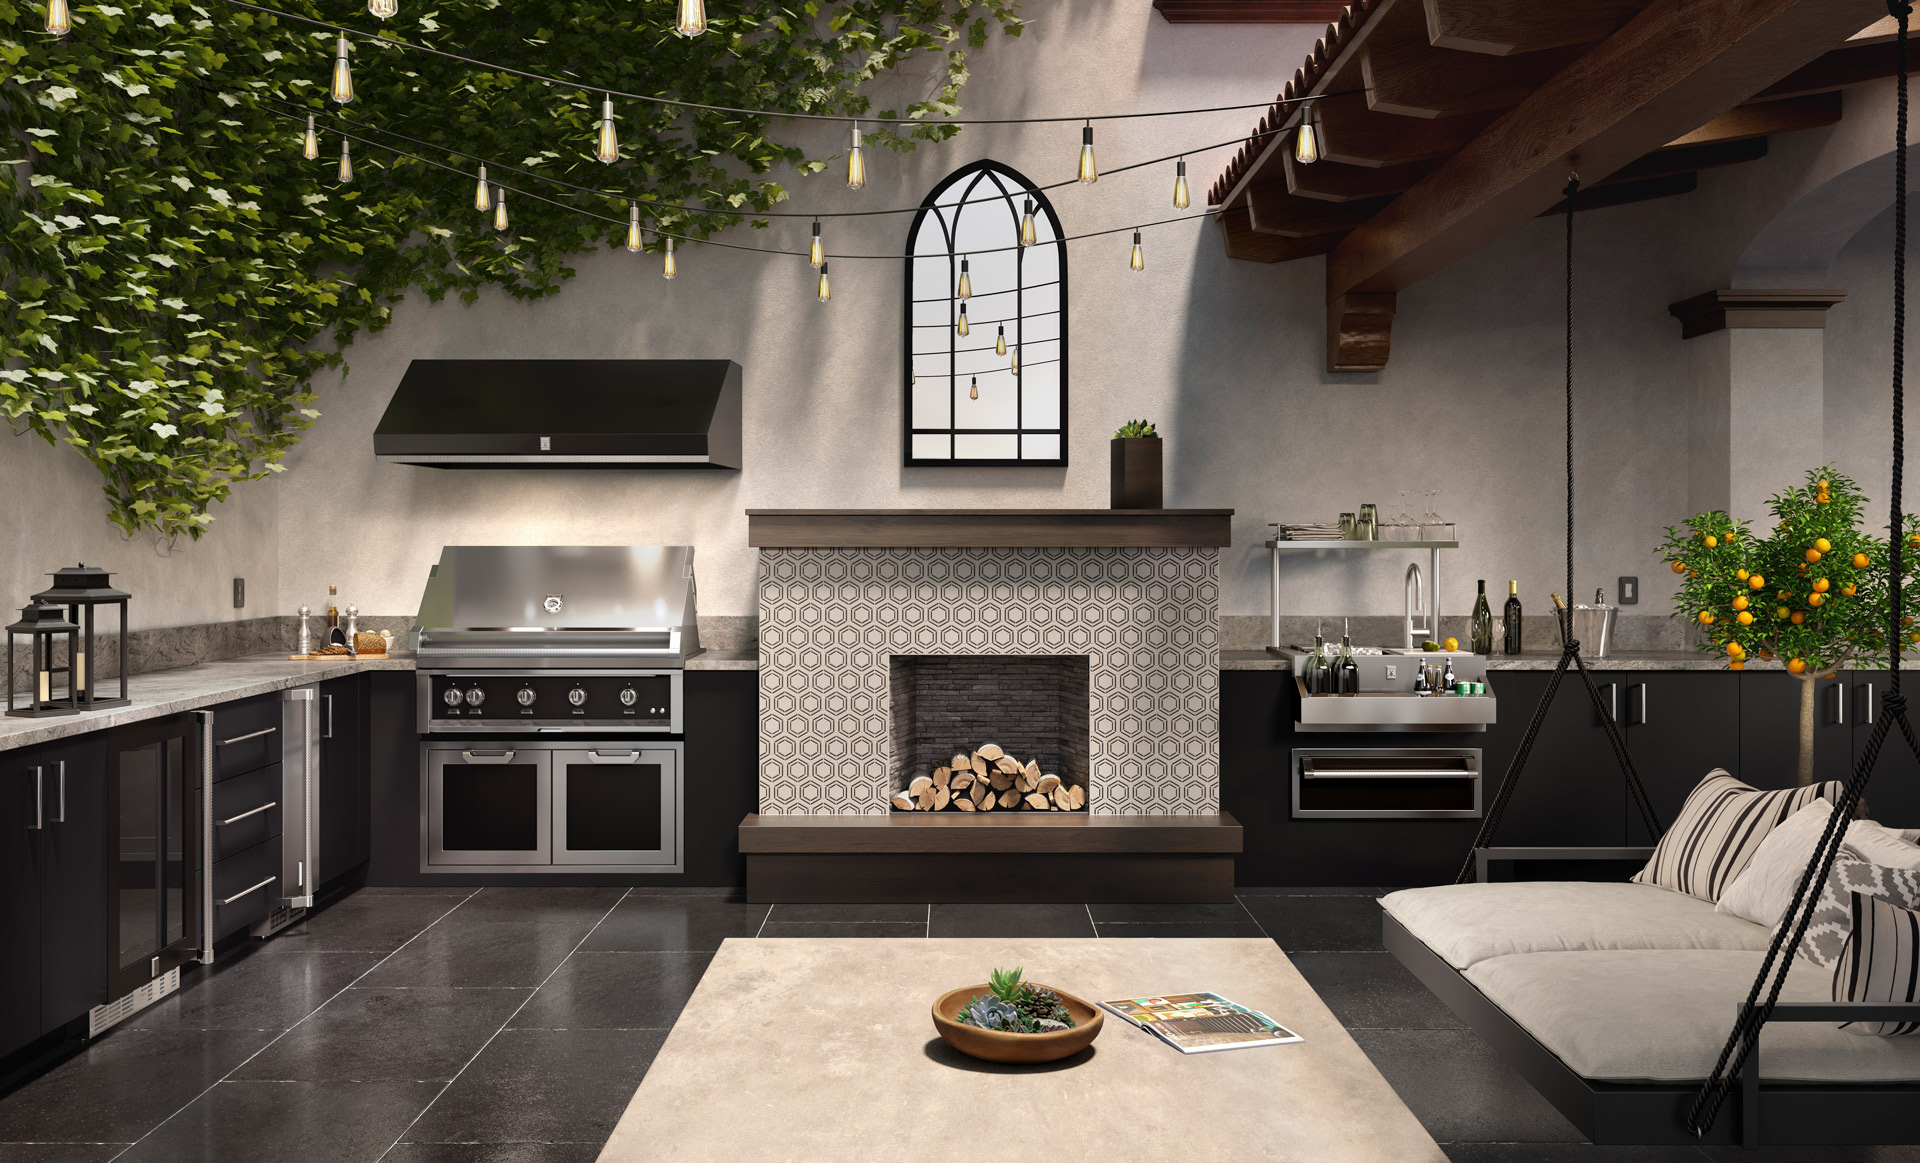 Hestan - Aspire Grilling Event - Save on your Aspire by Hestan Outdoor Kitchen